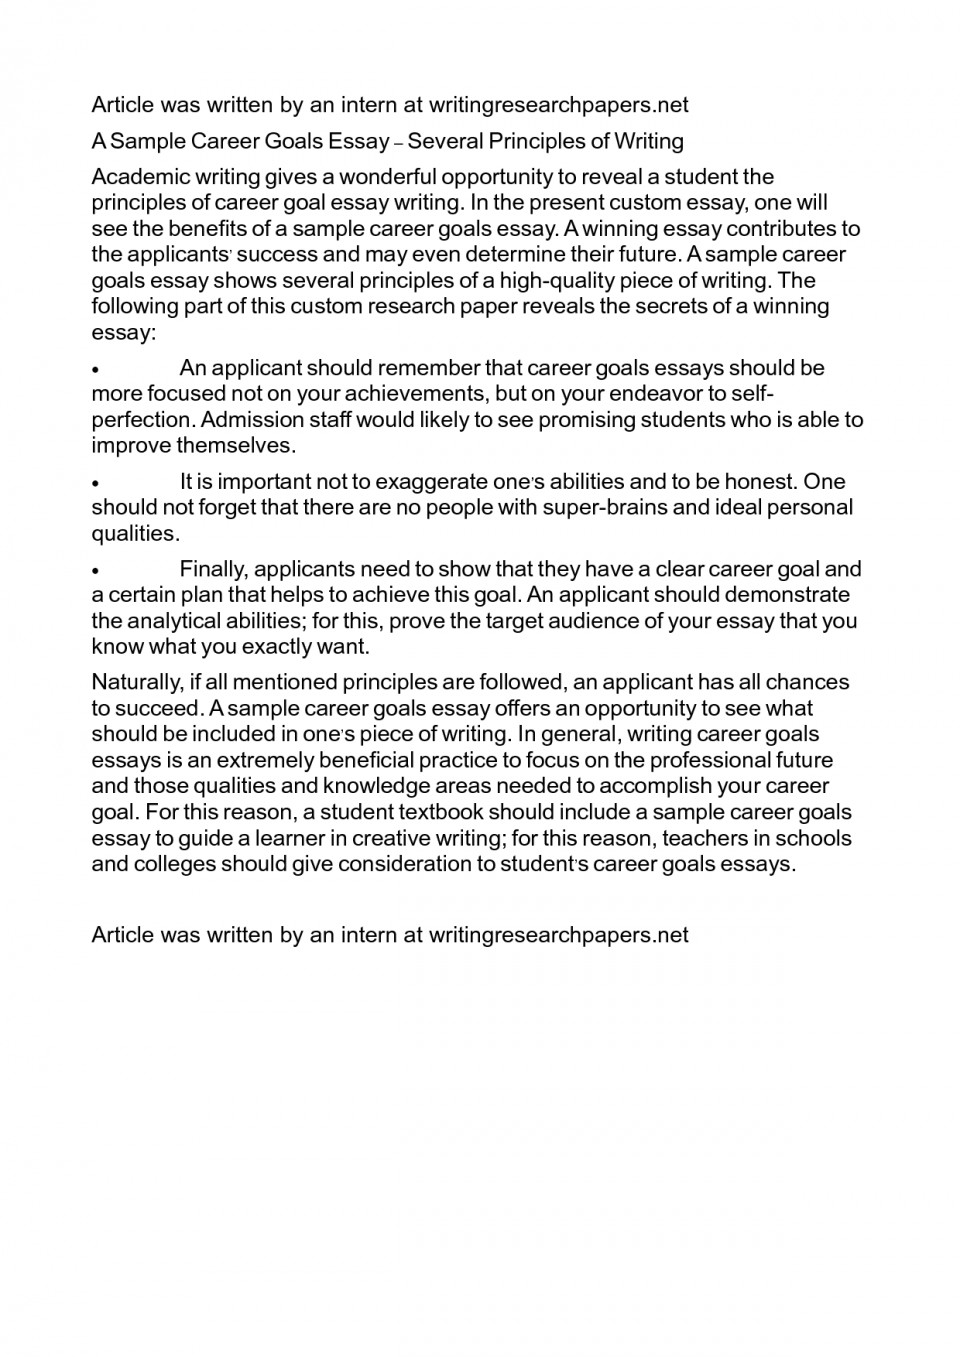 Essay on fasting for muslims